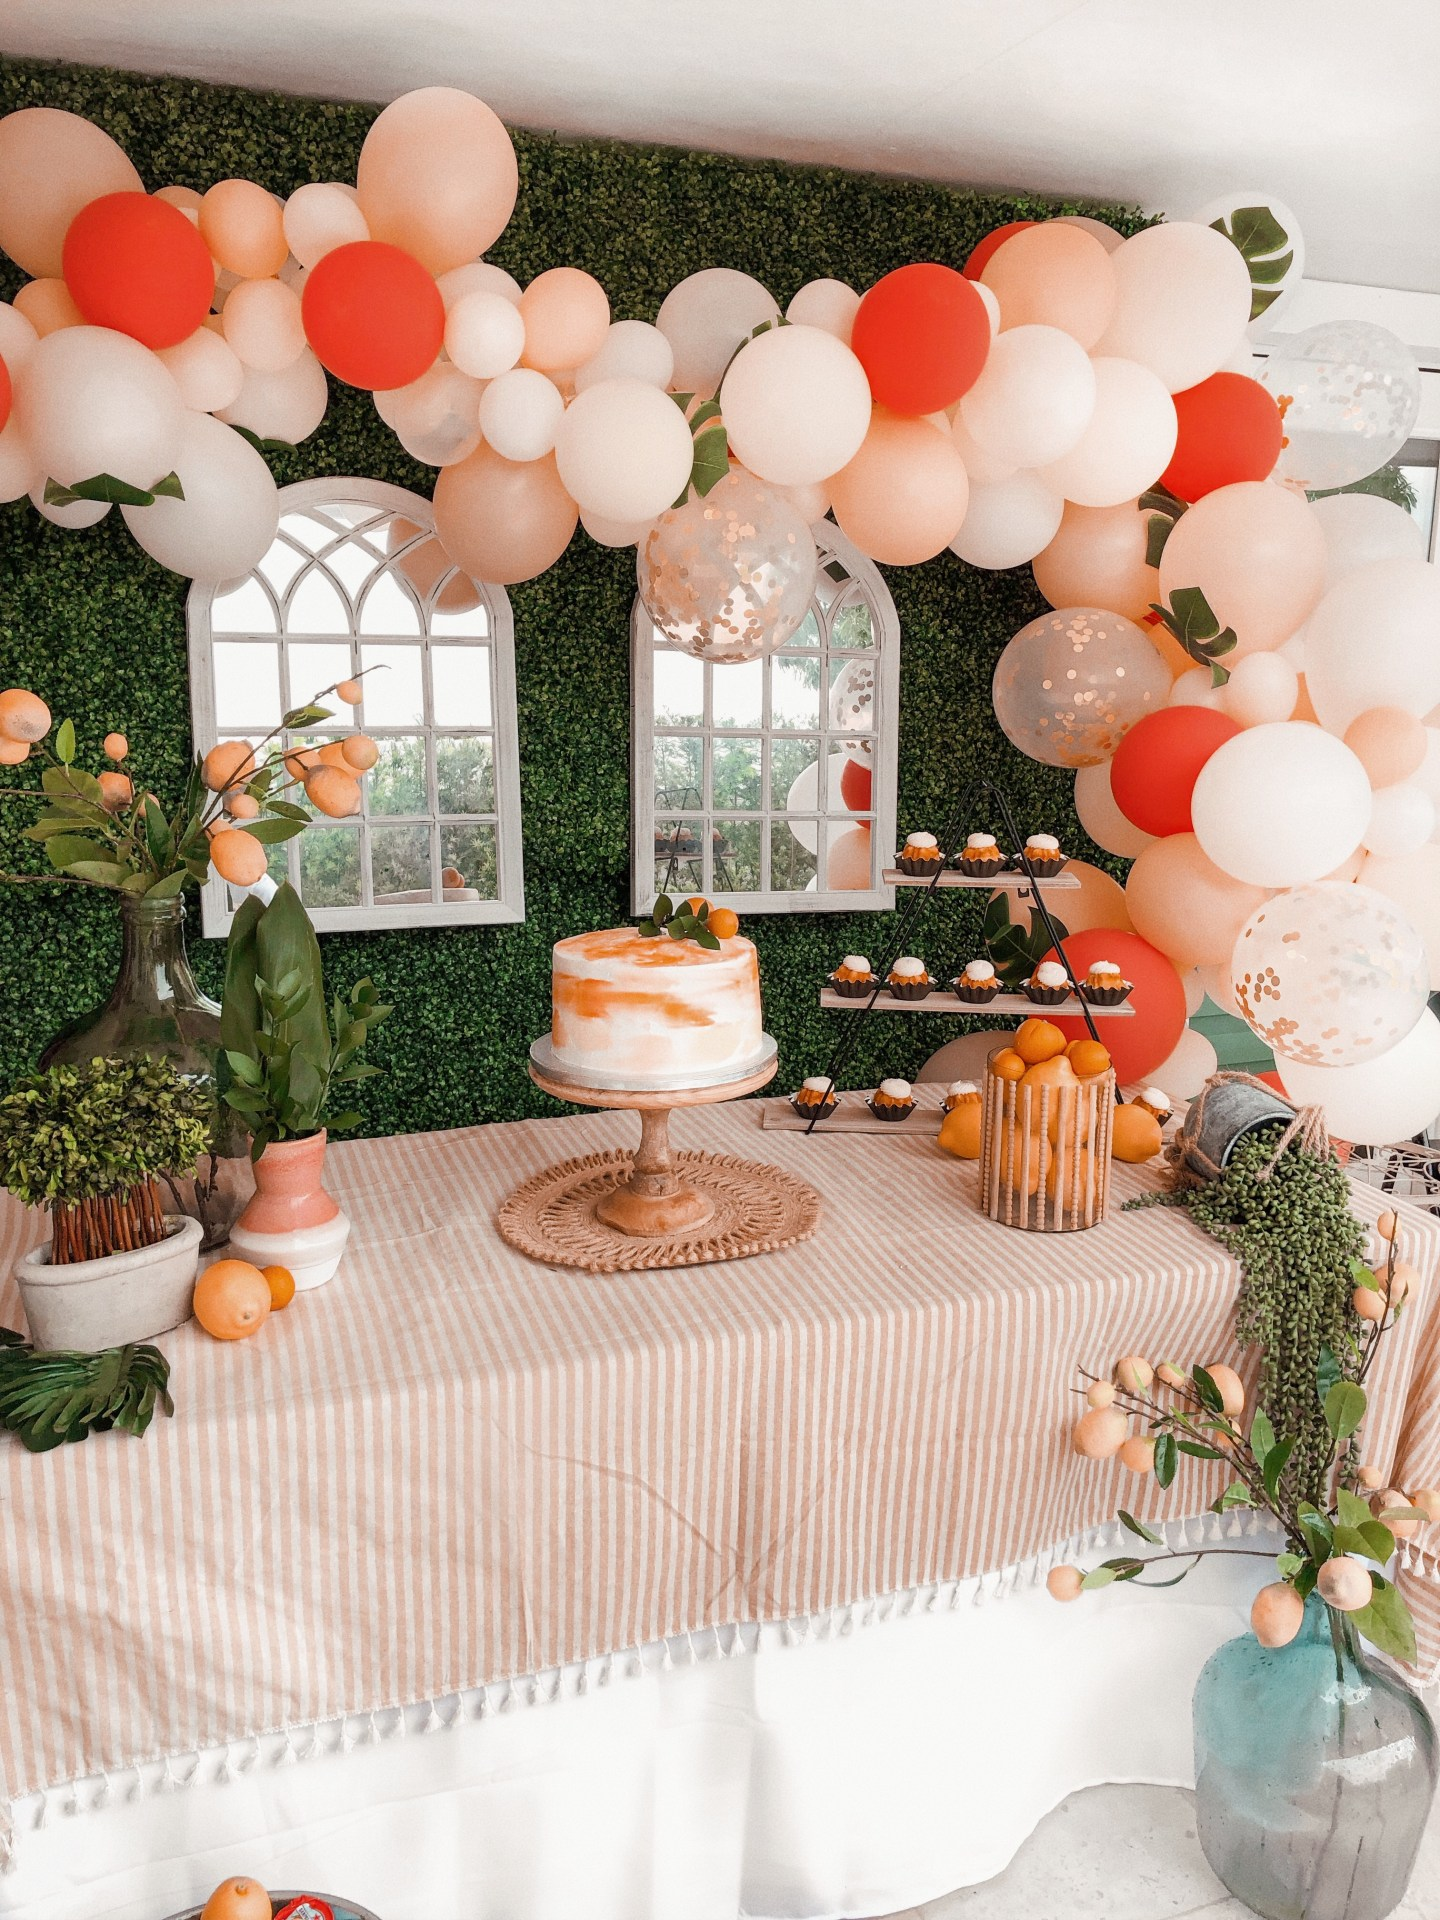 10 Party Planning Tips